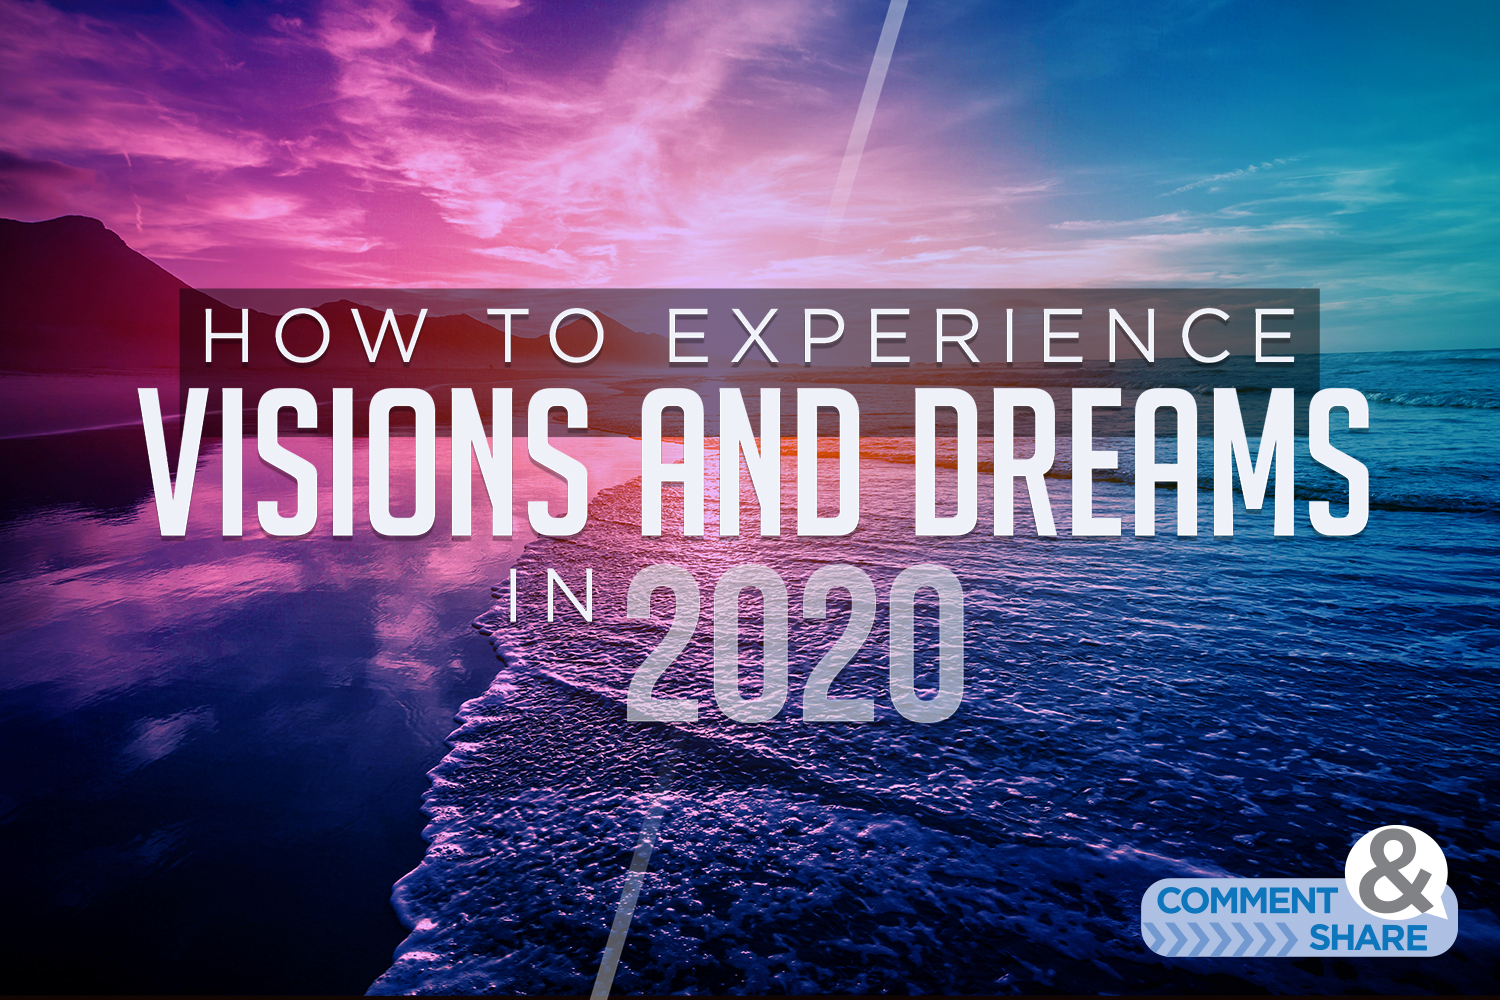 How to Experience Dreams and Visions in 2020